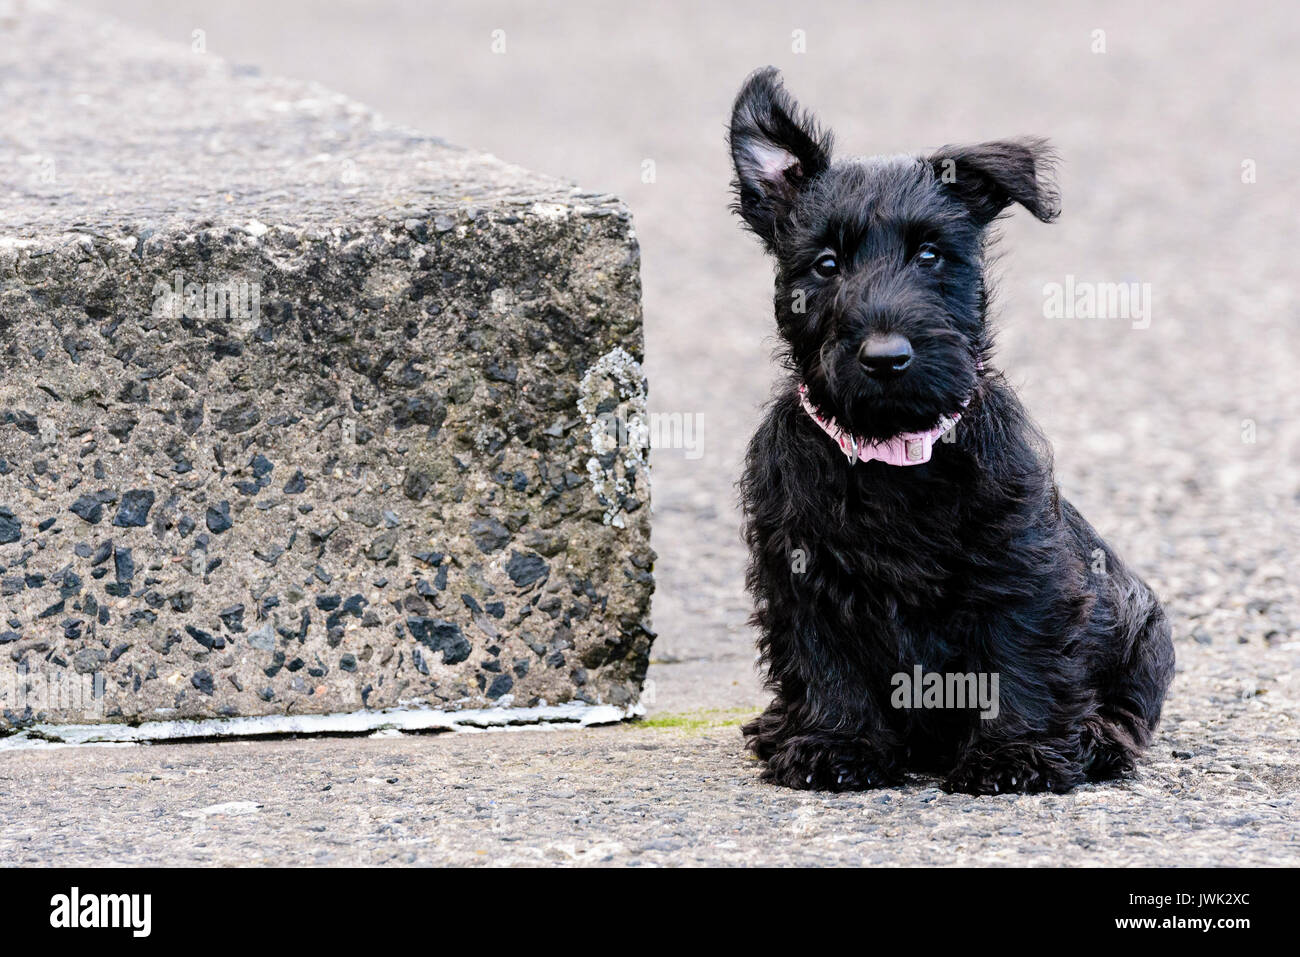 9 week old Scottish terrier puppy sitting by a concrete step - Stock Image